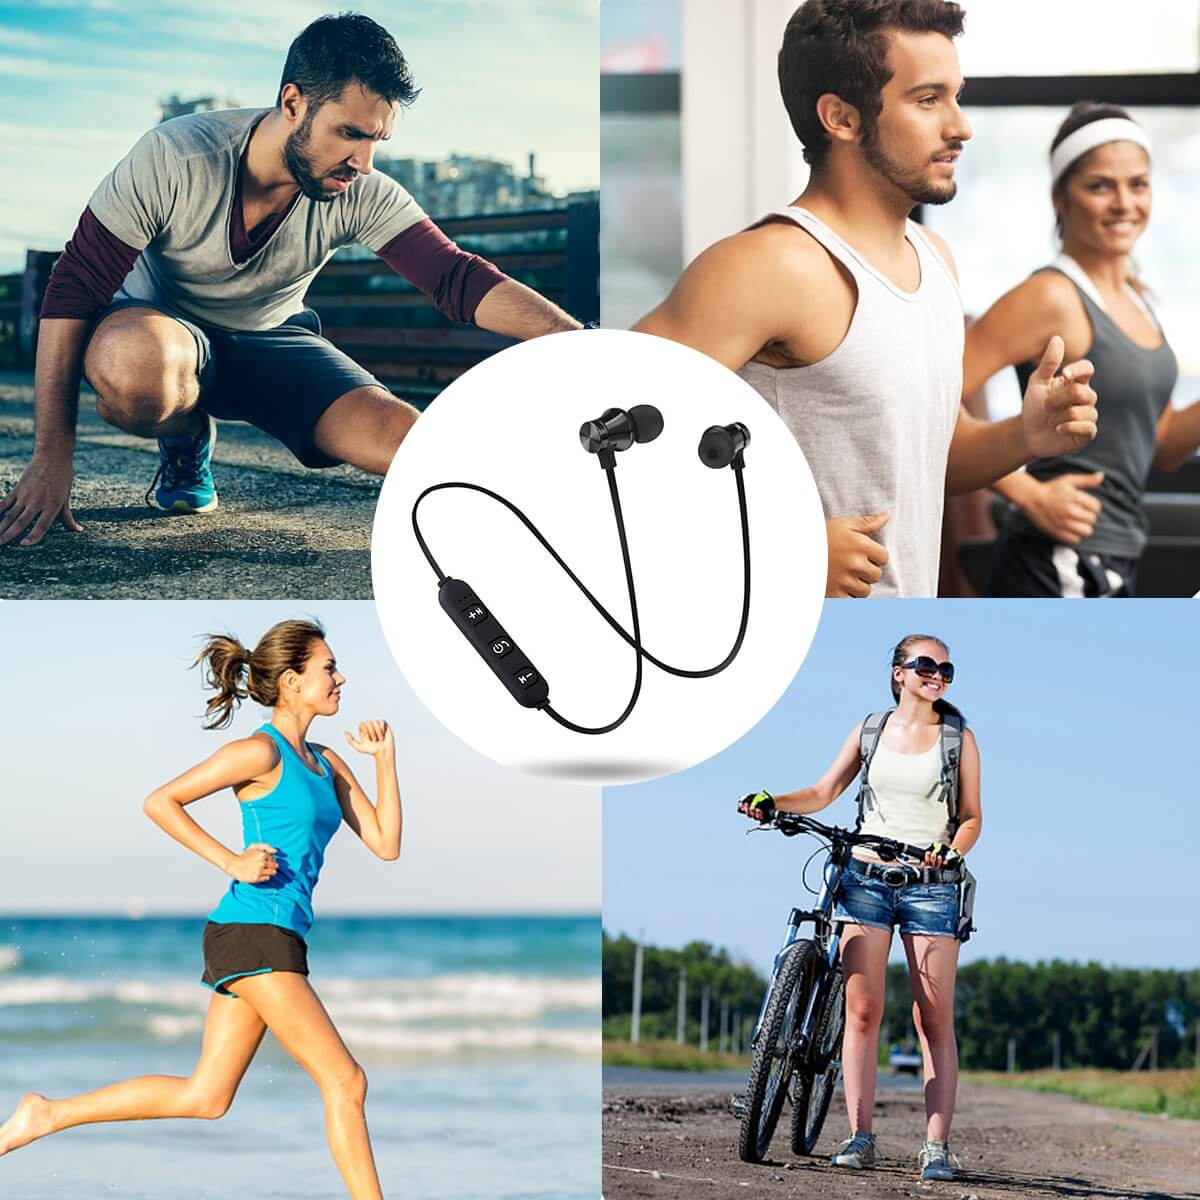 14 HTB1p3hHaOrxK1RkHFCcq6AQCVXaY - NEW! Magnetic Wireless Bluetooth Hands Free Headset